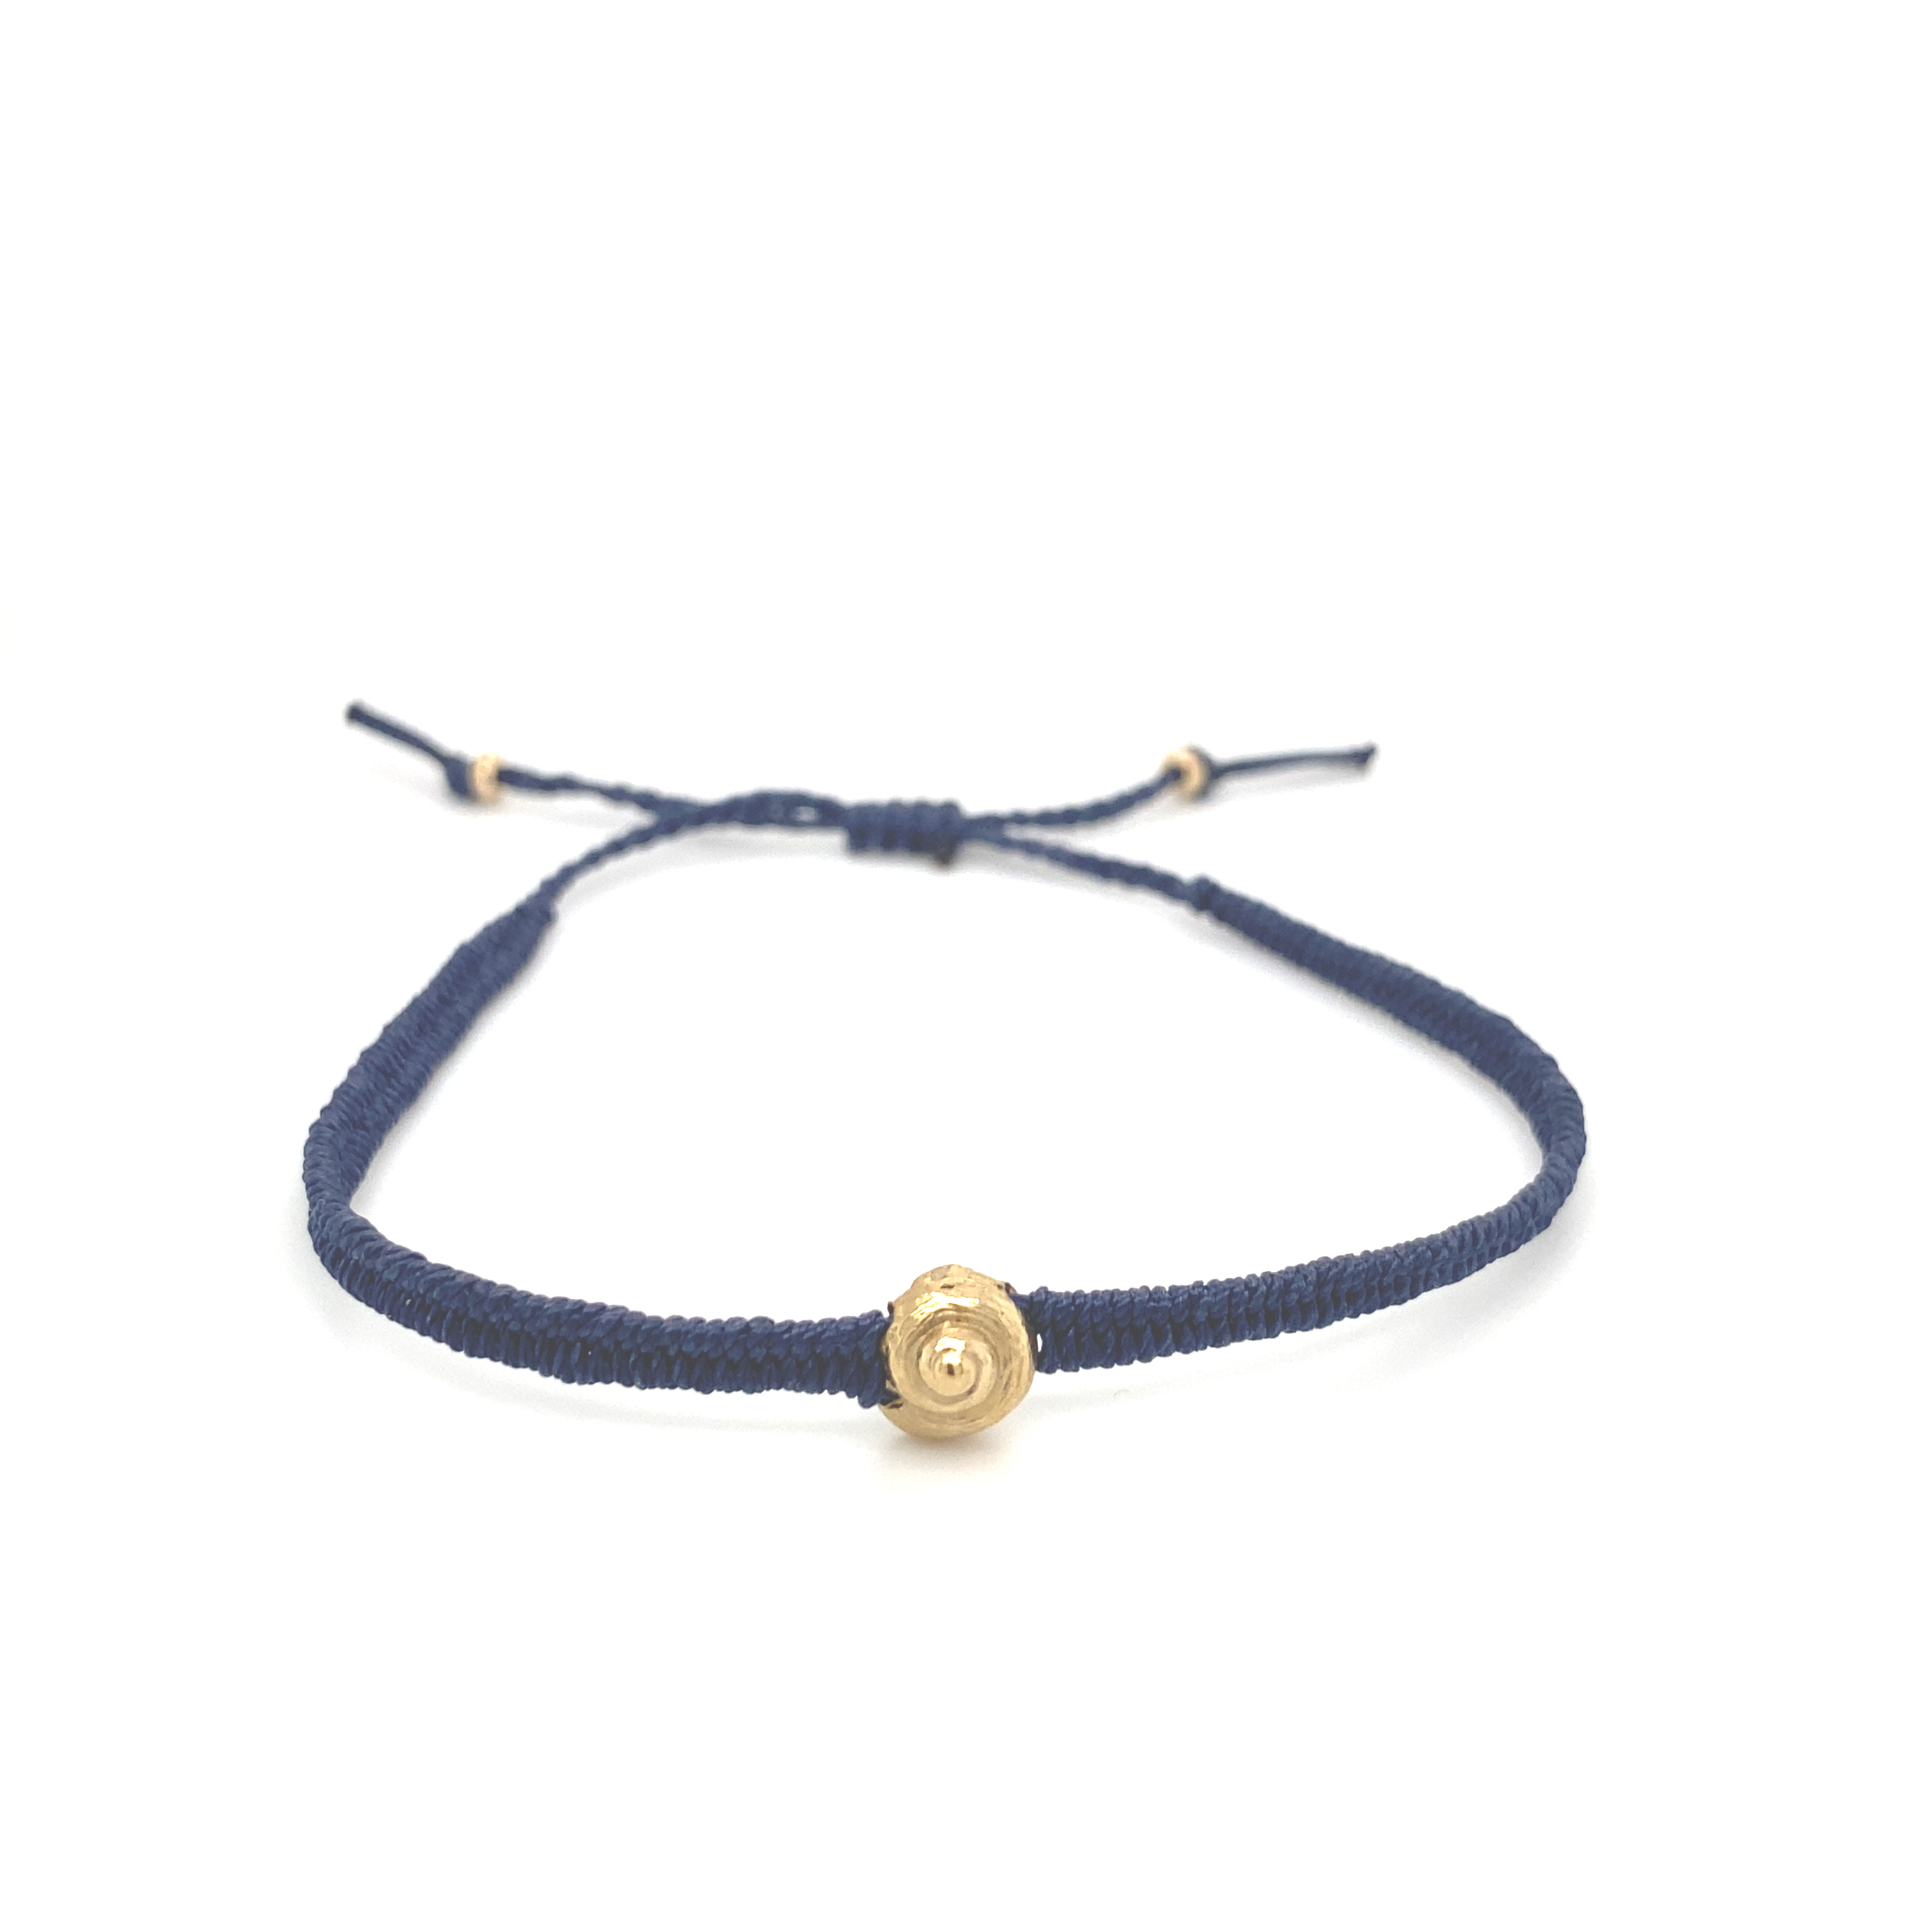 A gold shell and silk charm bracelet